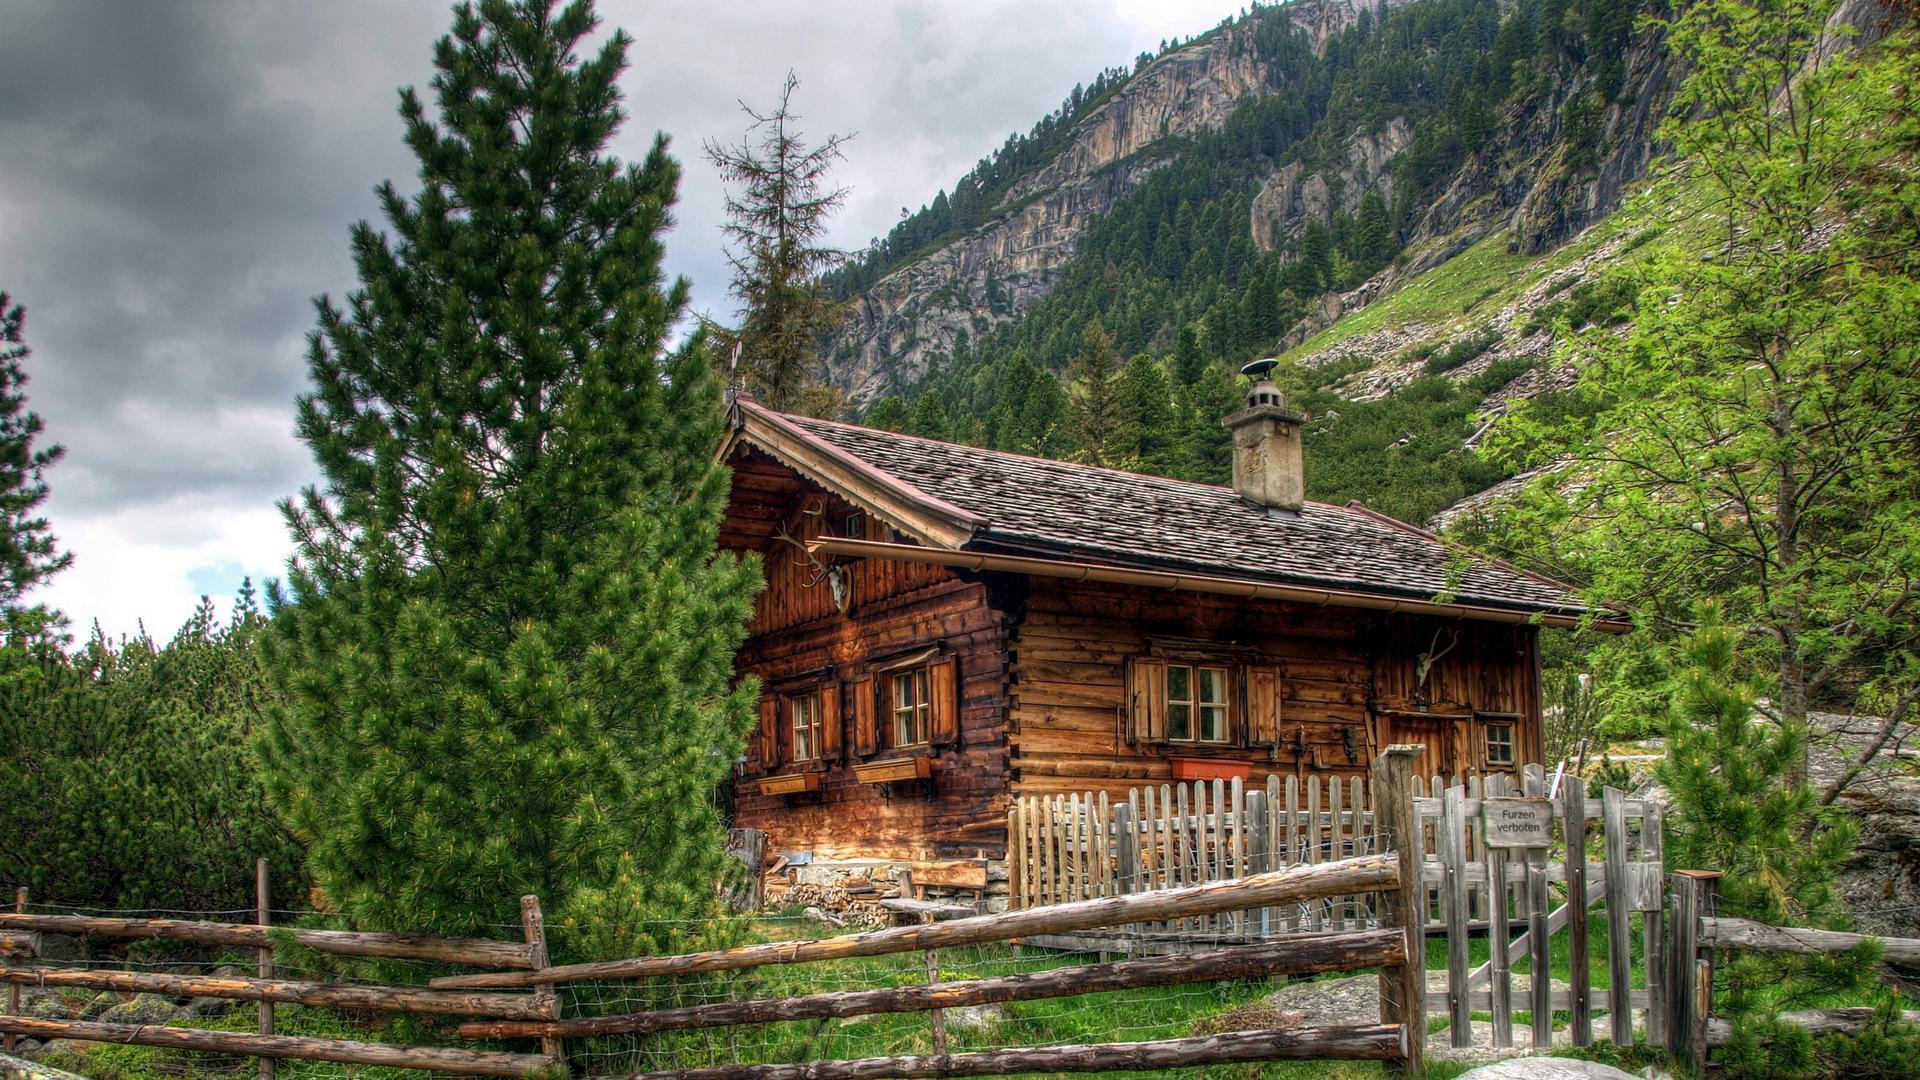 Log cabin in the woods painting - Hdr Log Cabin Wallpaper 18777 1920x1080 Px Freewallsource